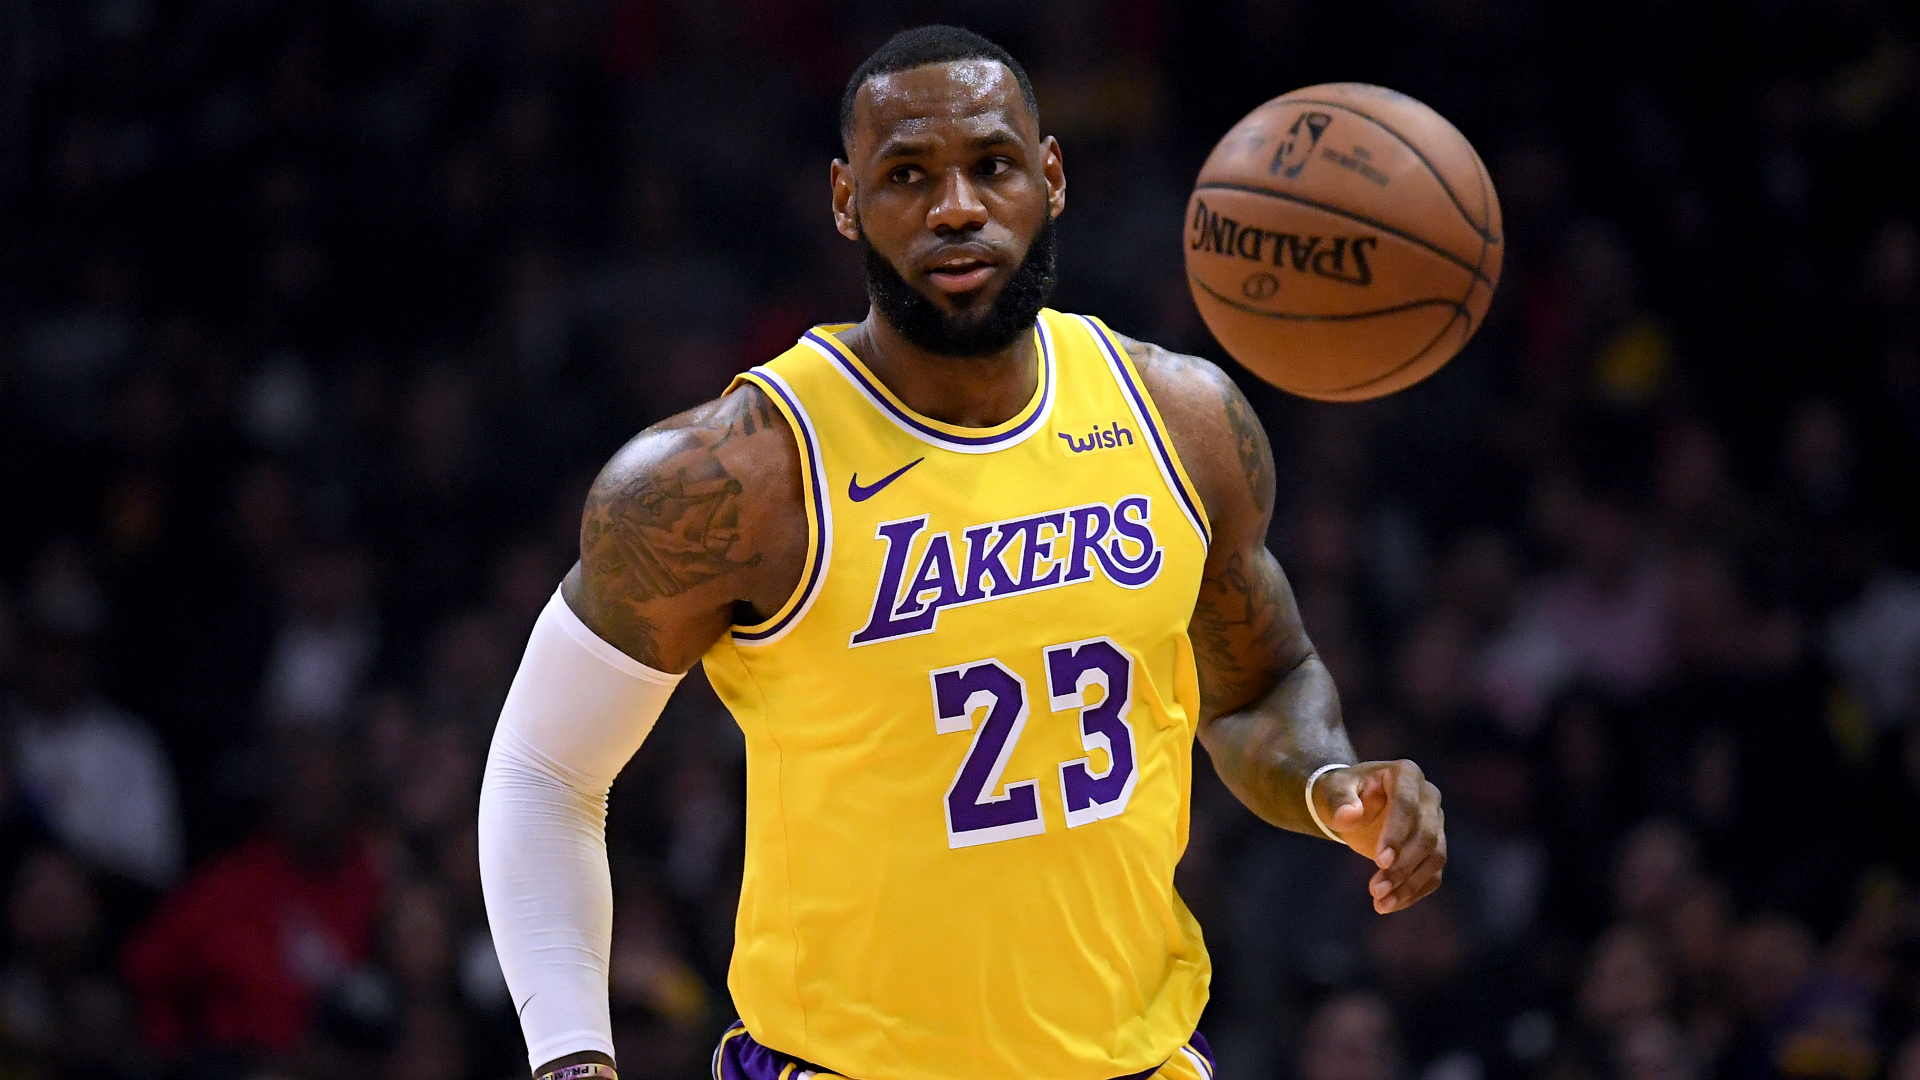 H H James: LeBron James Reacts To Colin Kaepernick's Settlement With